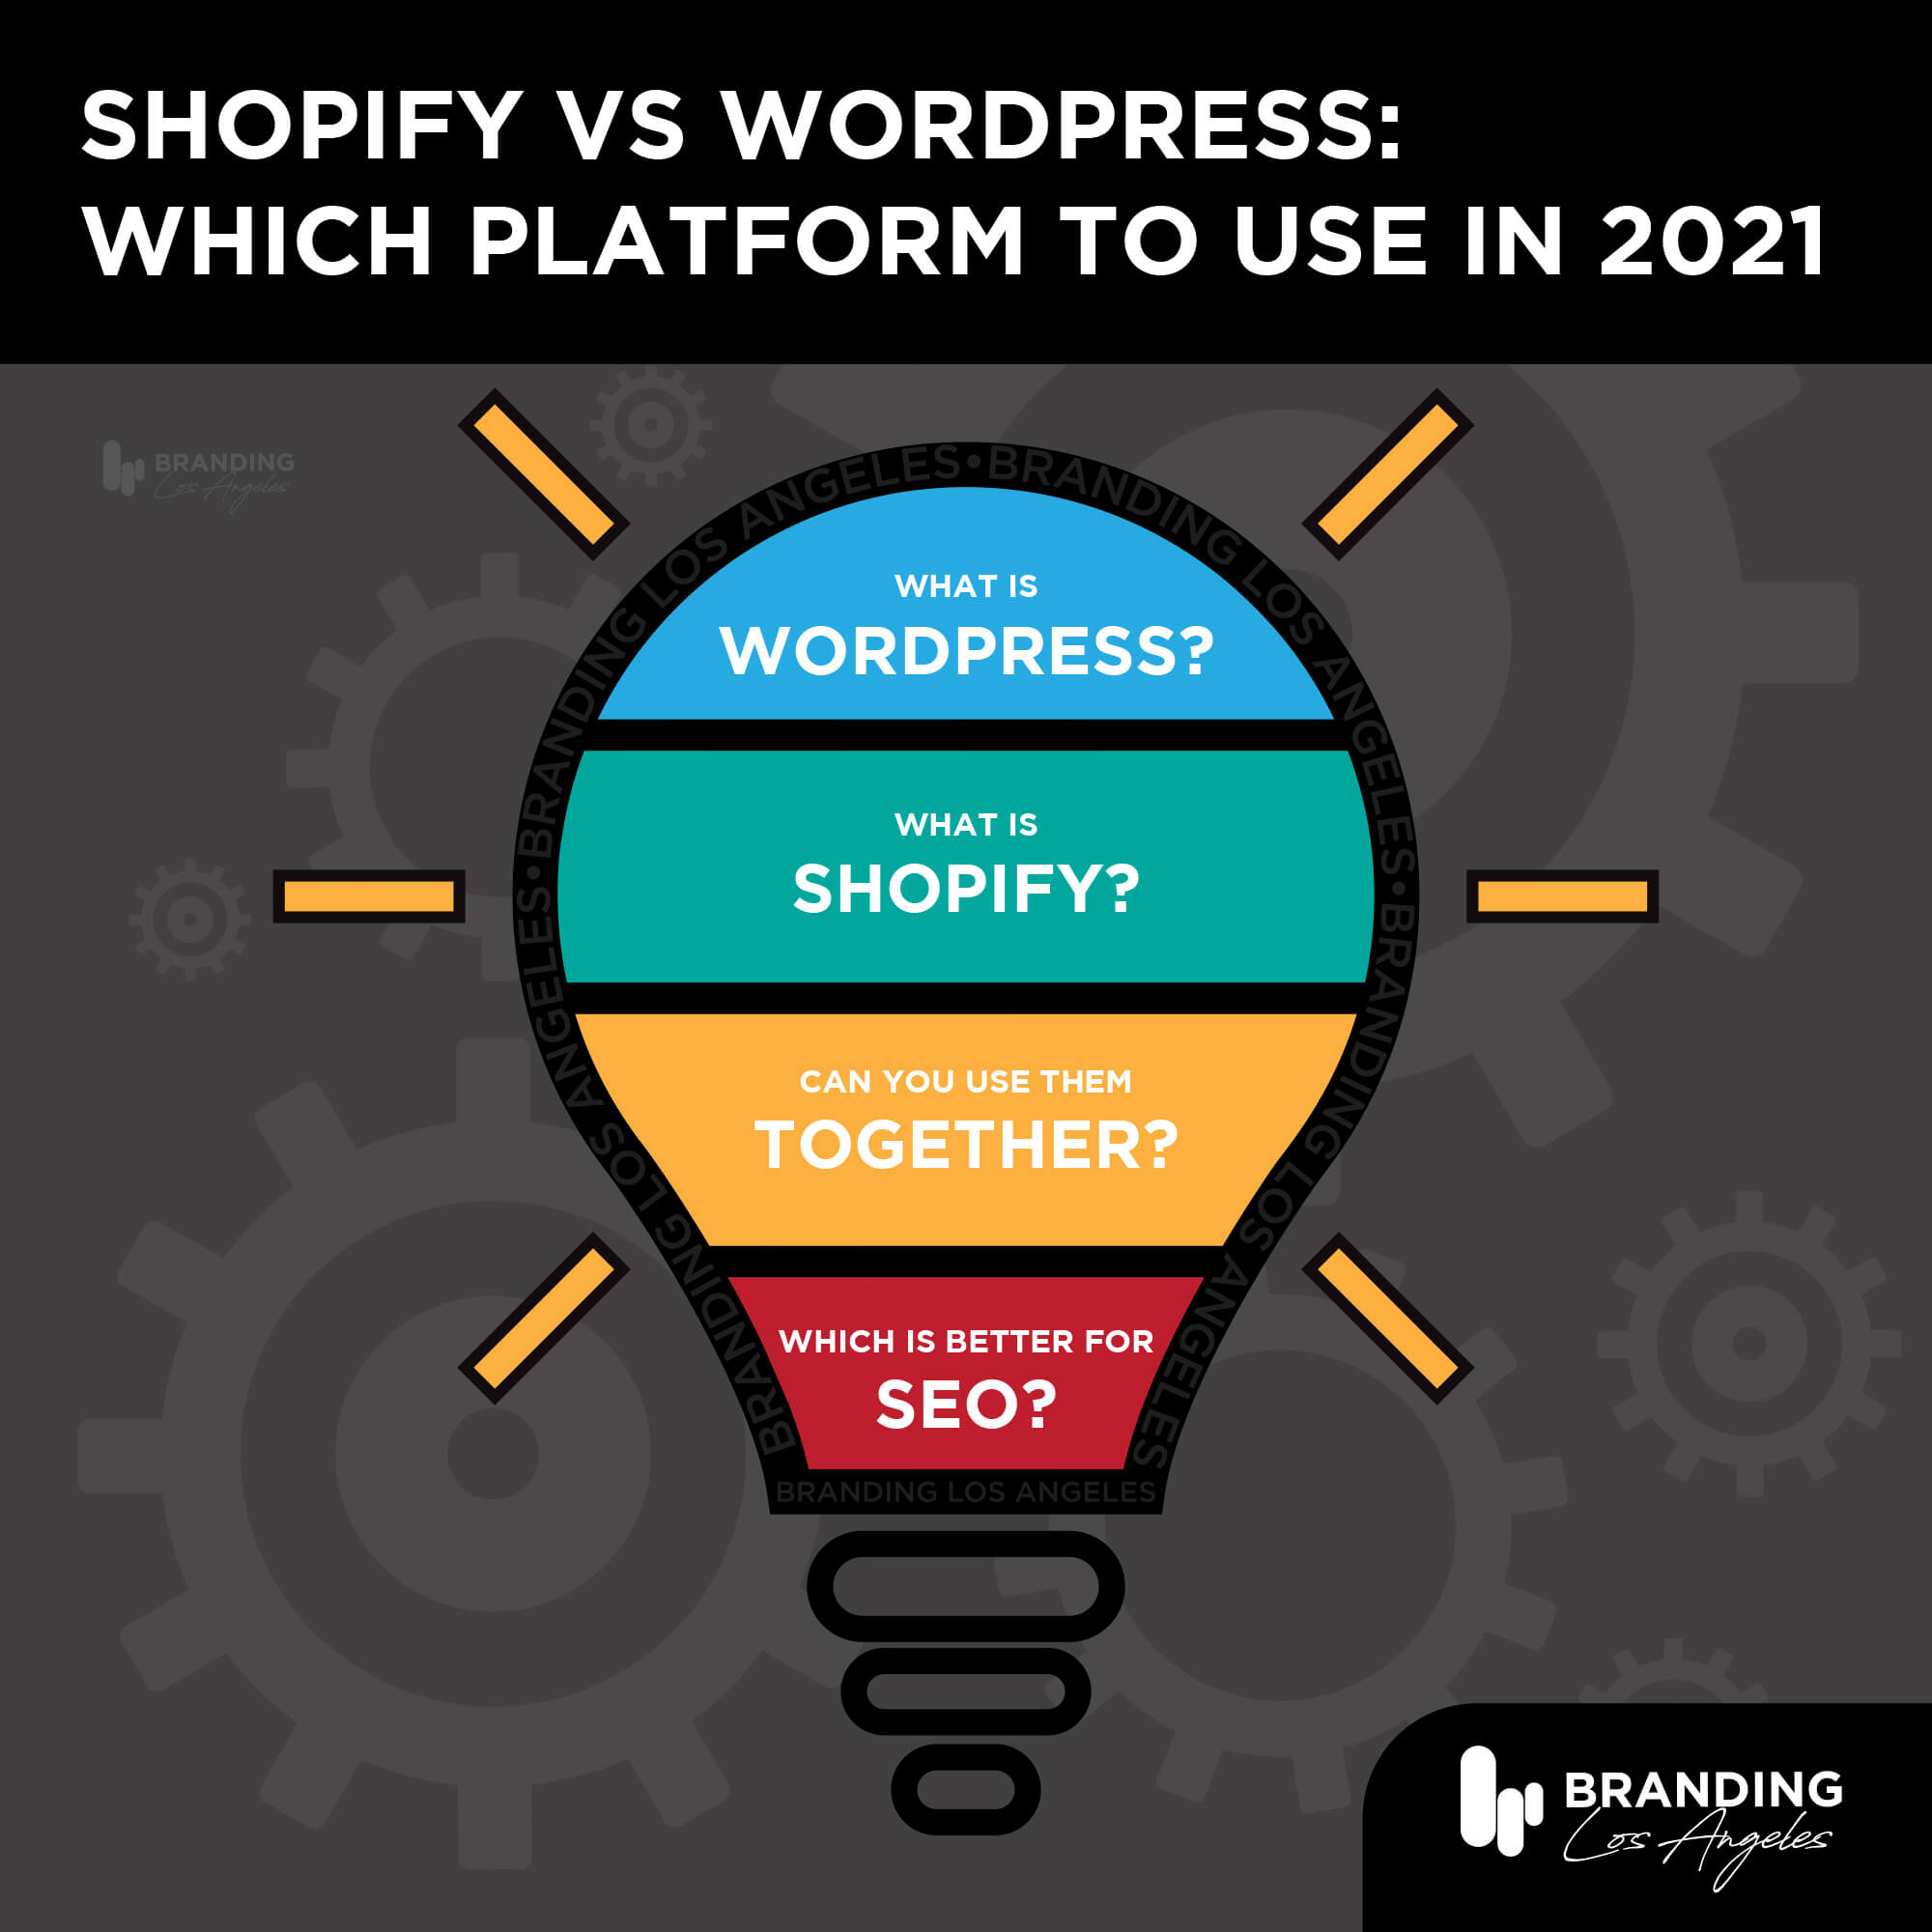 Shopify vs WordPress: Which Platform to Use in 2021